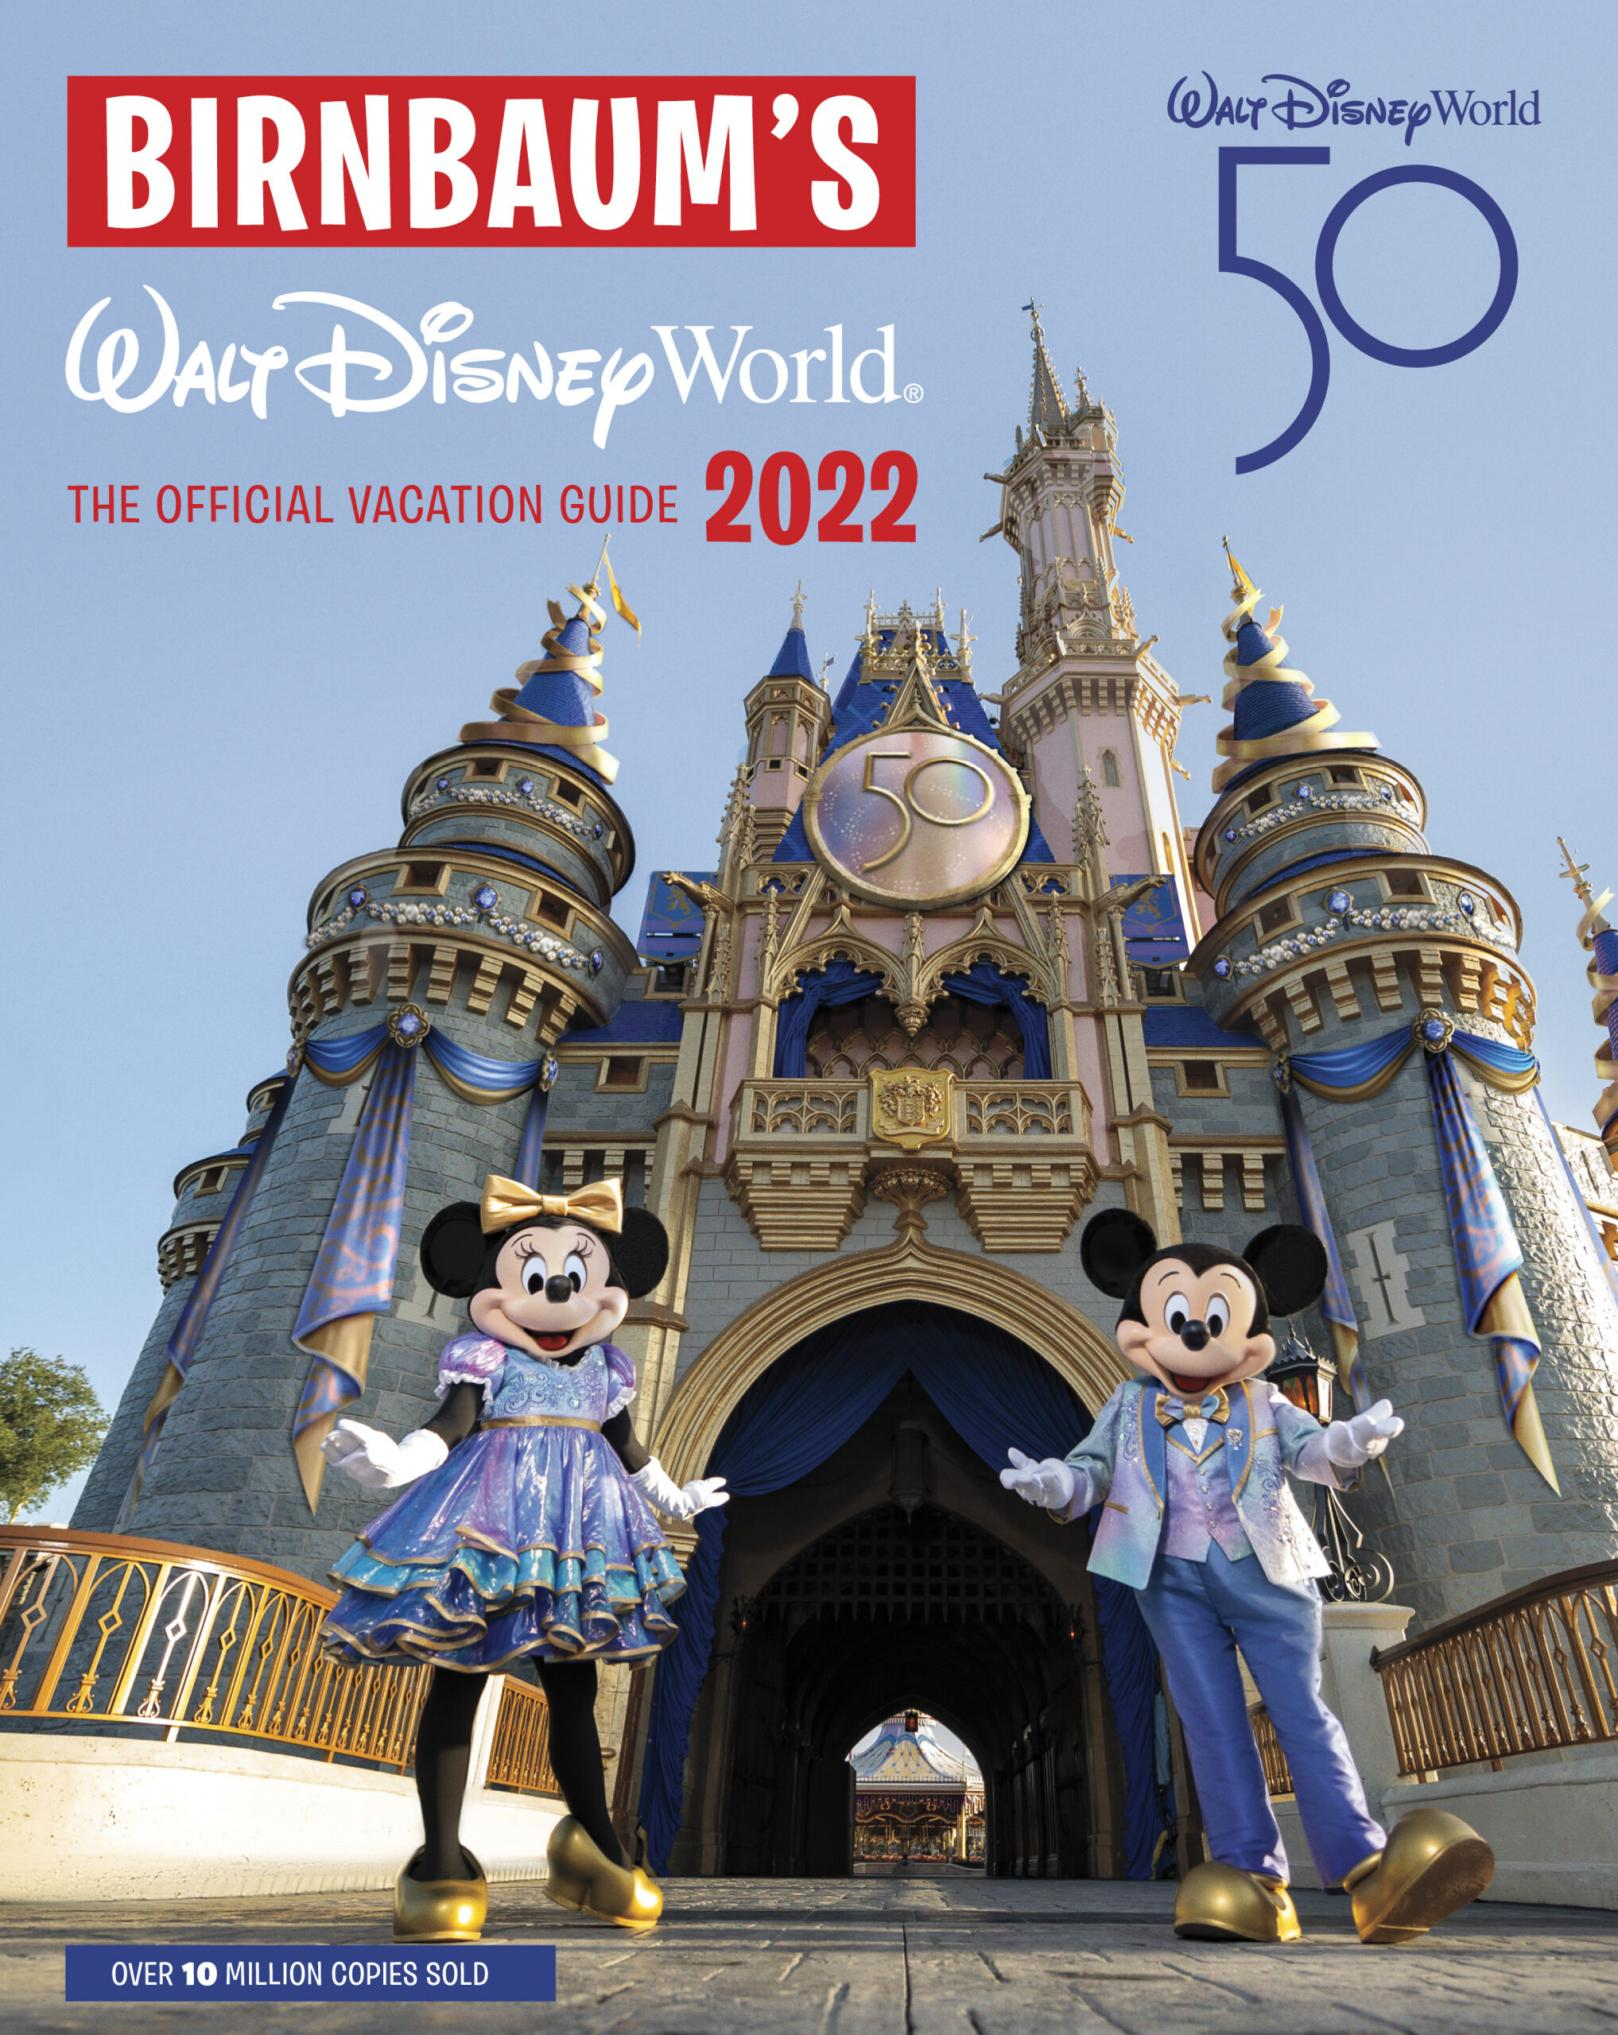 Birnbaum's Walt Disney World : the official vacation guide 2022 by Lefkon, Wendy